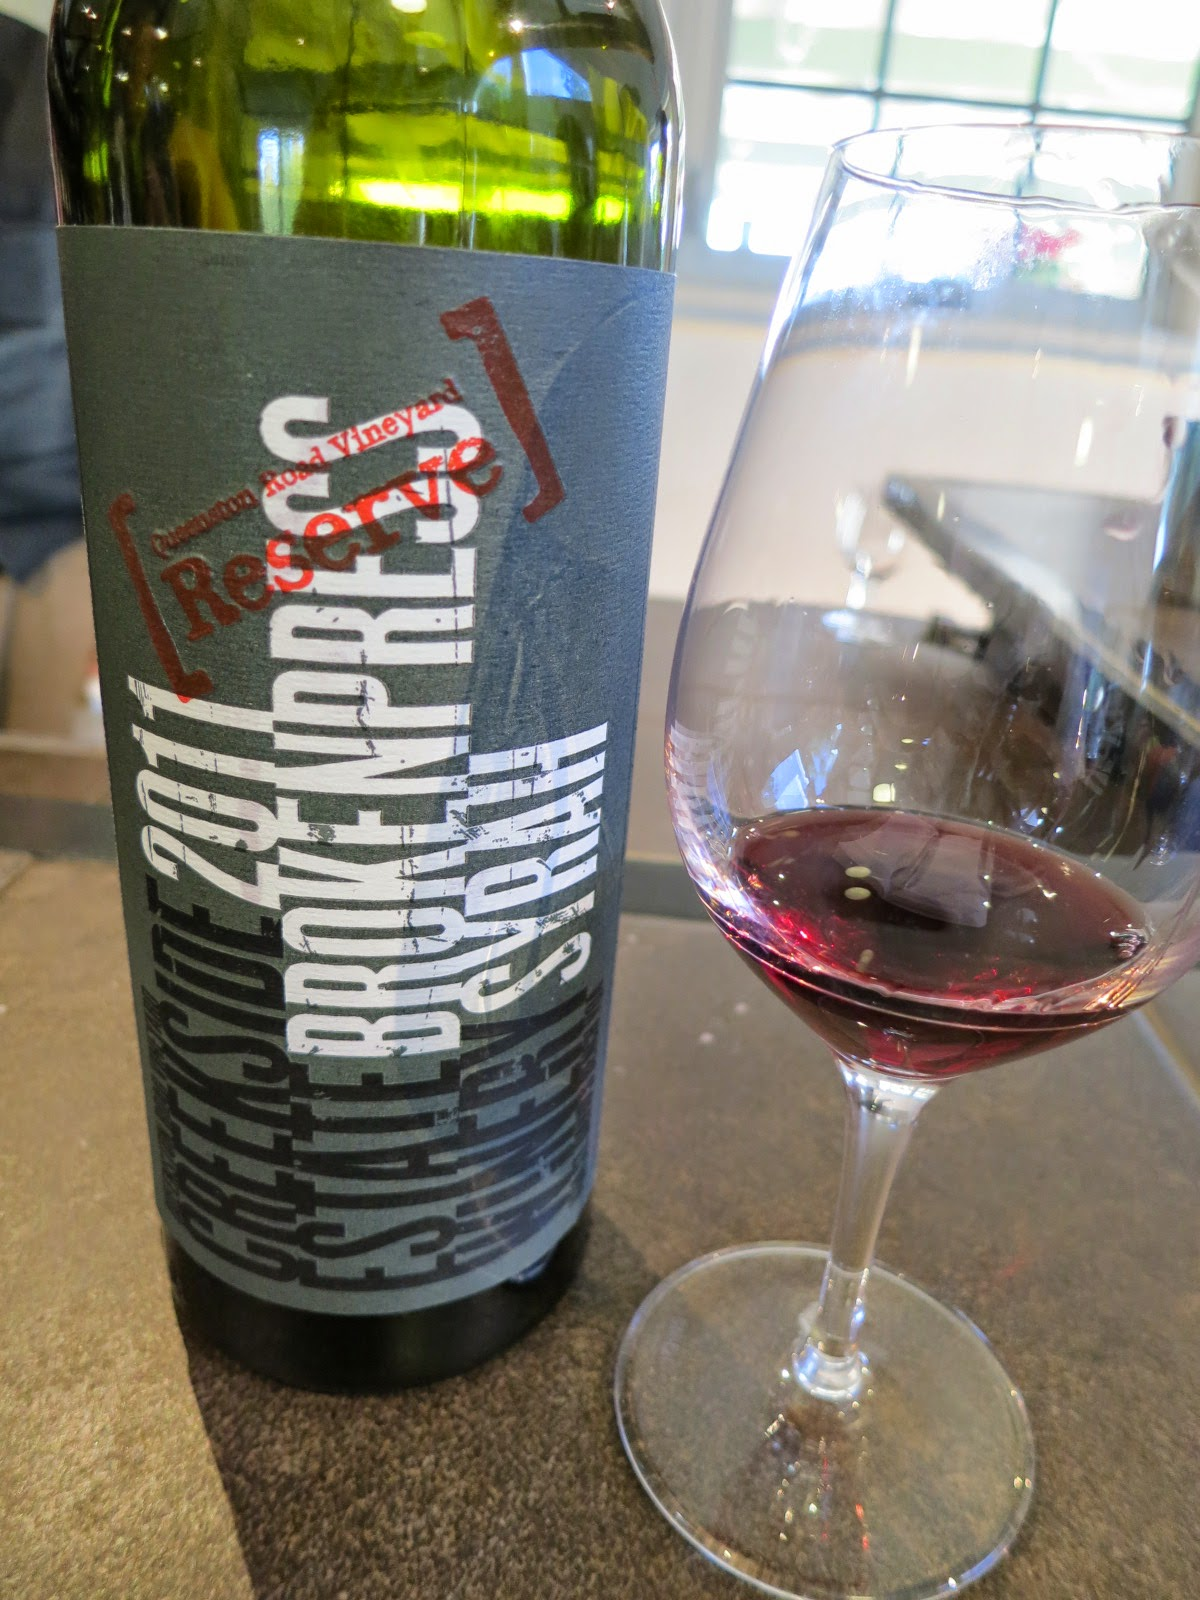 Wine Review of 2011 Creekside Broken Press Syrah from Queenston Road Vineyard, VQA St. David's Bench